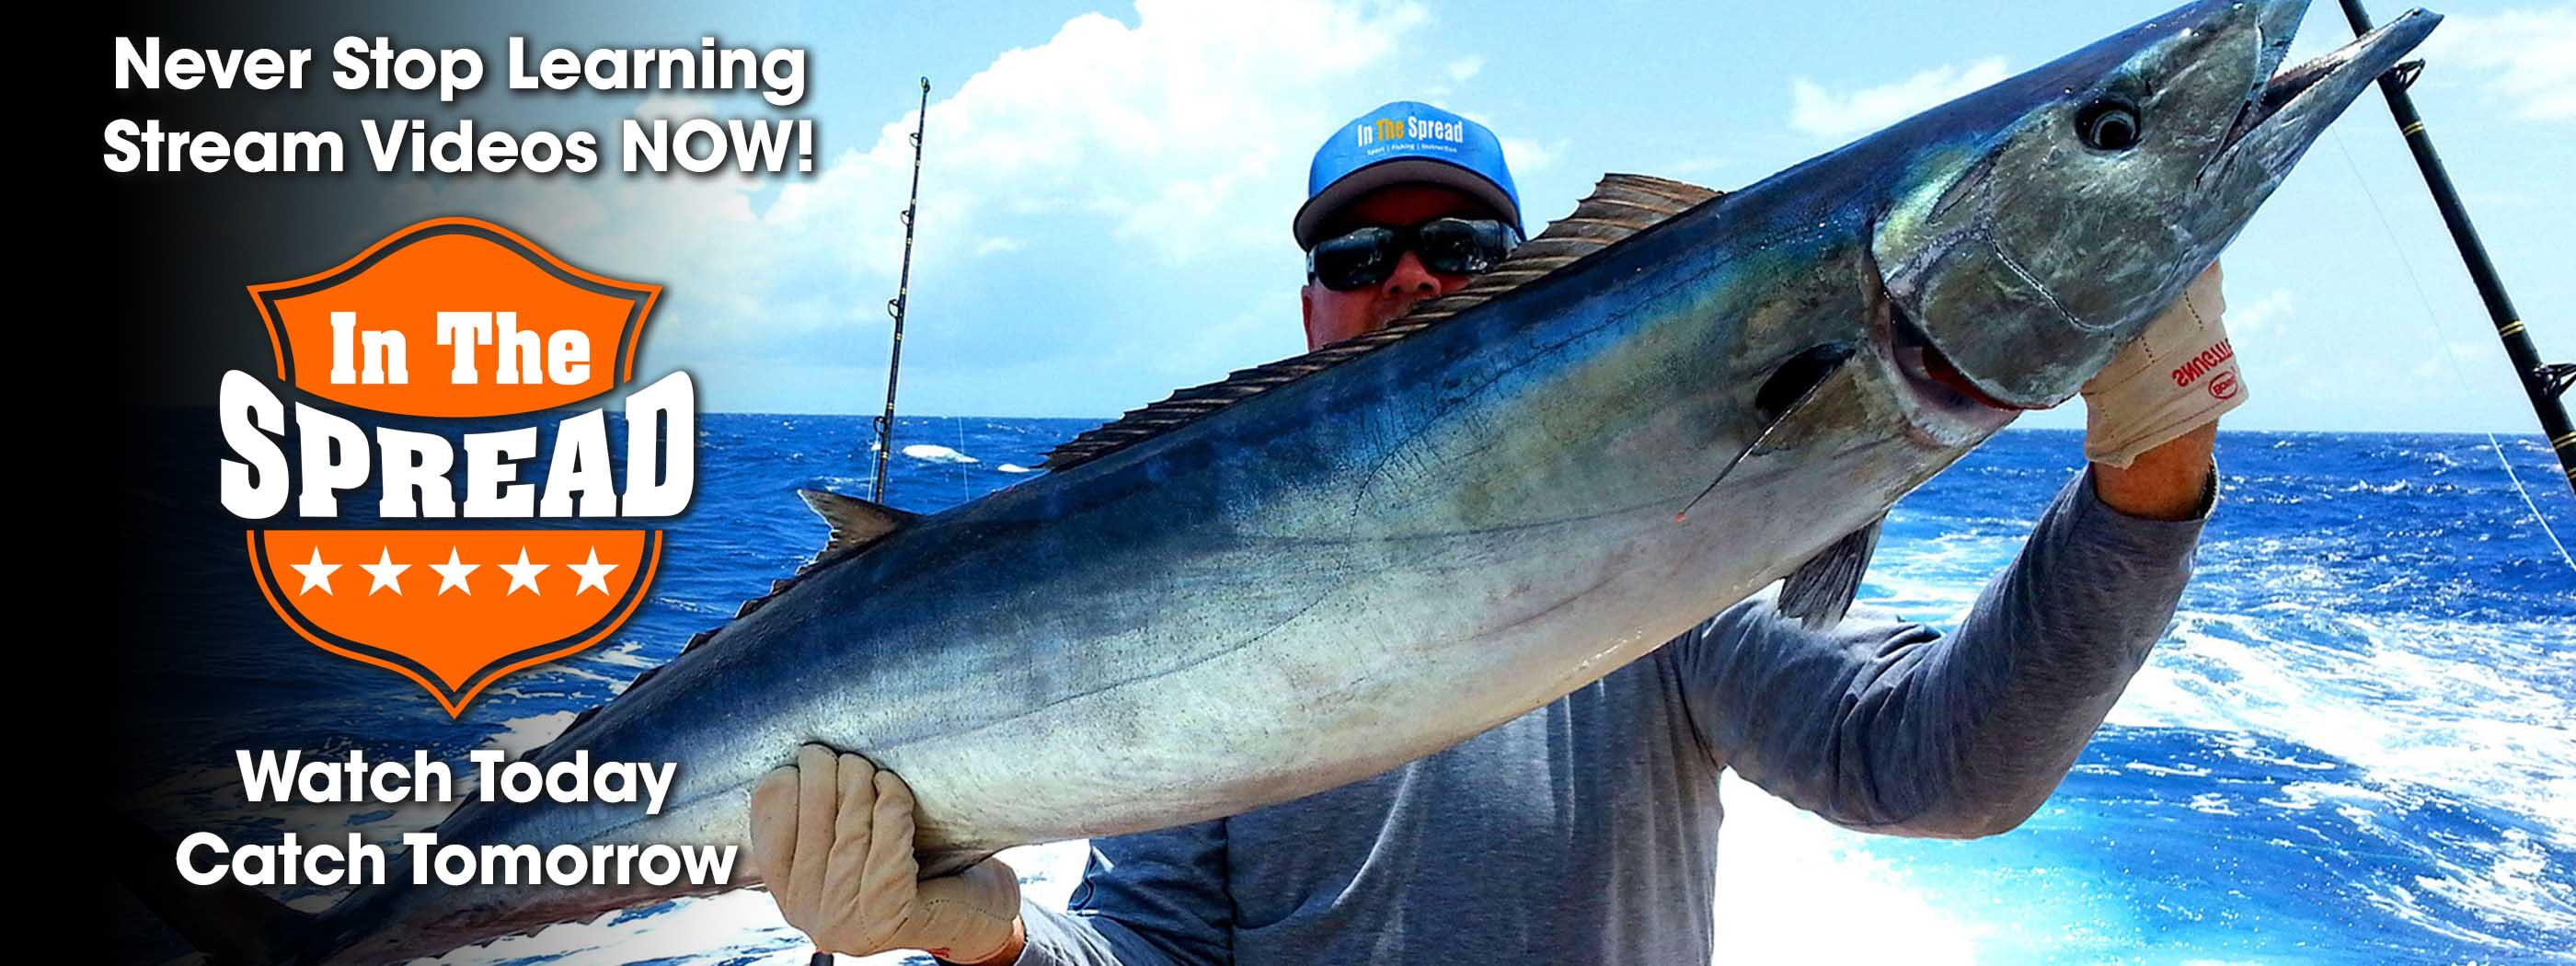 in the spread wahoo fishing video offshore